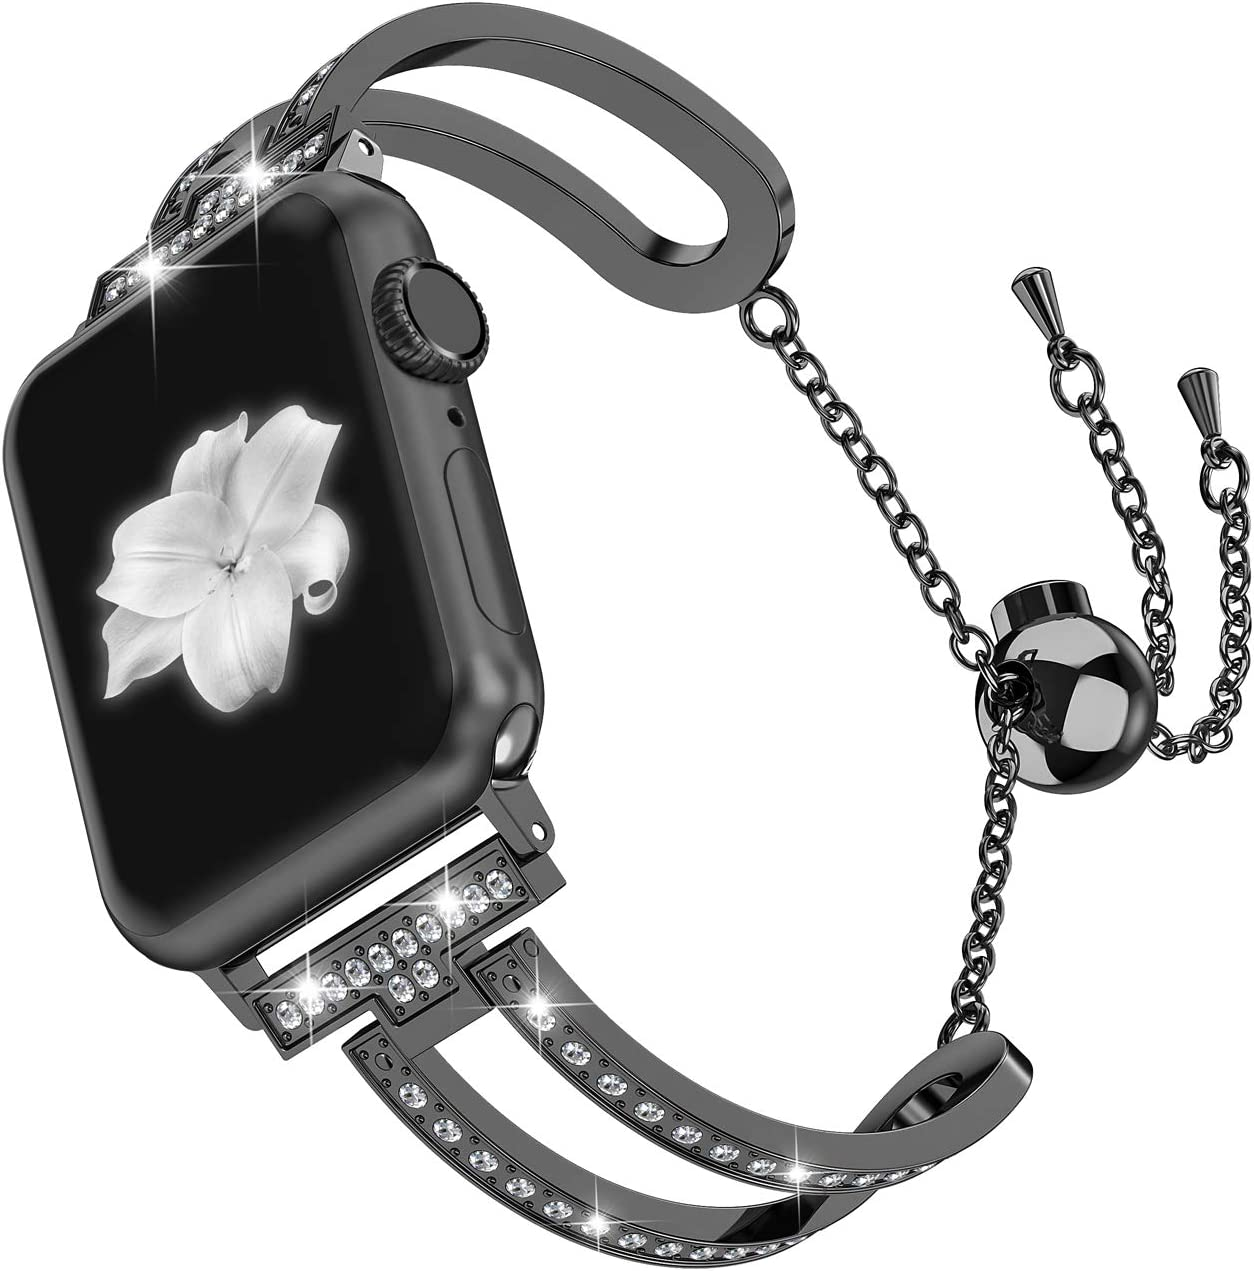 Wearlizer Black Compatible with Apple Watch Band 42mm 44mm for iWatch SE Womens Bling Jewelry U-Type Wristband Steel with Rhinestone Bangle Replacement Strap Metal Bracelet Chain Series 6 5 4 3 2 1